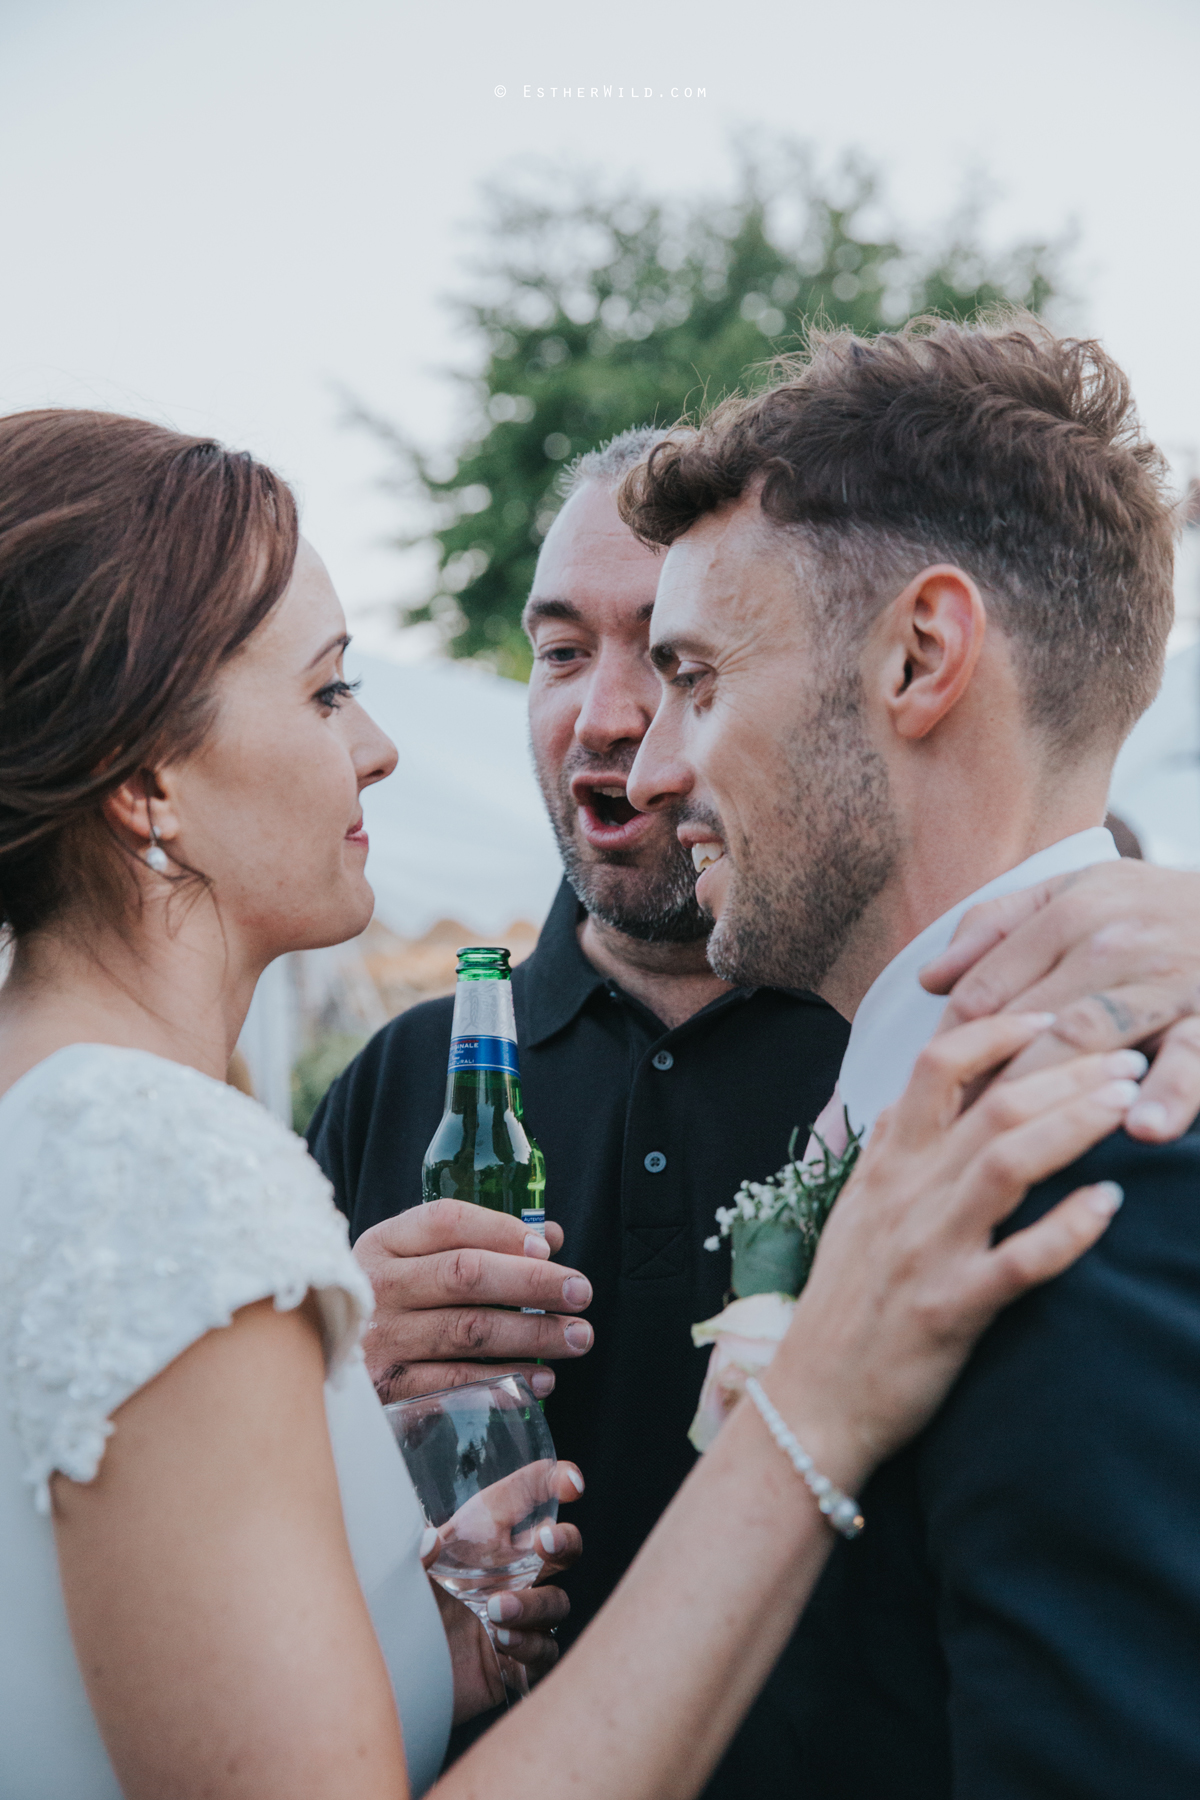 Wootton_Wedding_Copyright_Esther_Wild_Photographer_IMG_3521.jpg